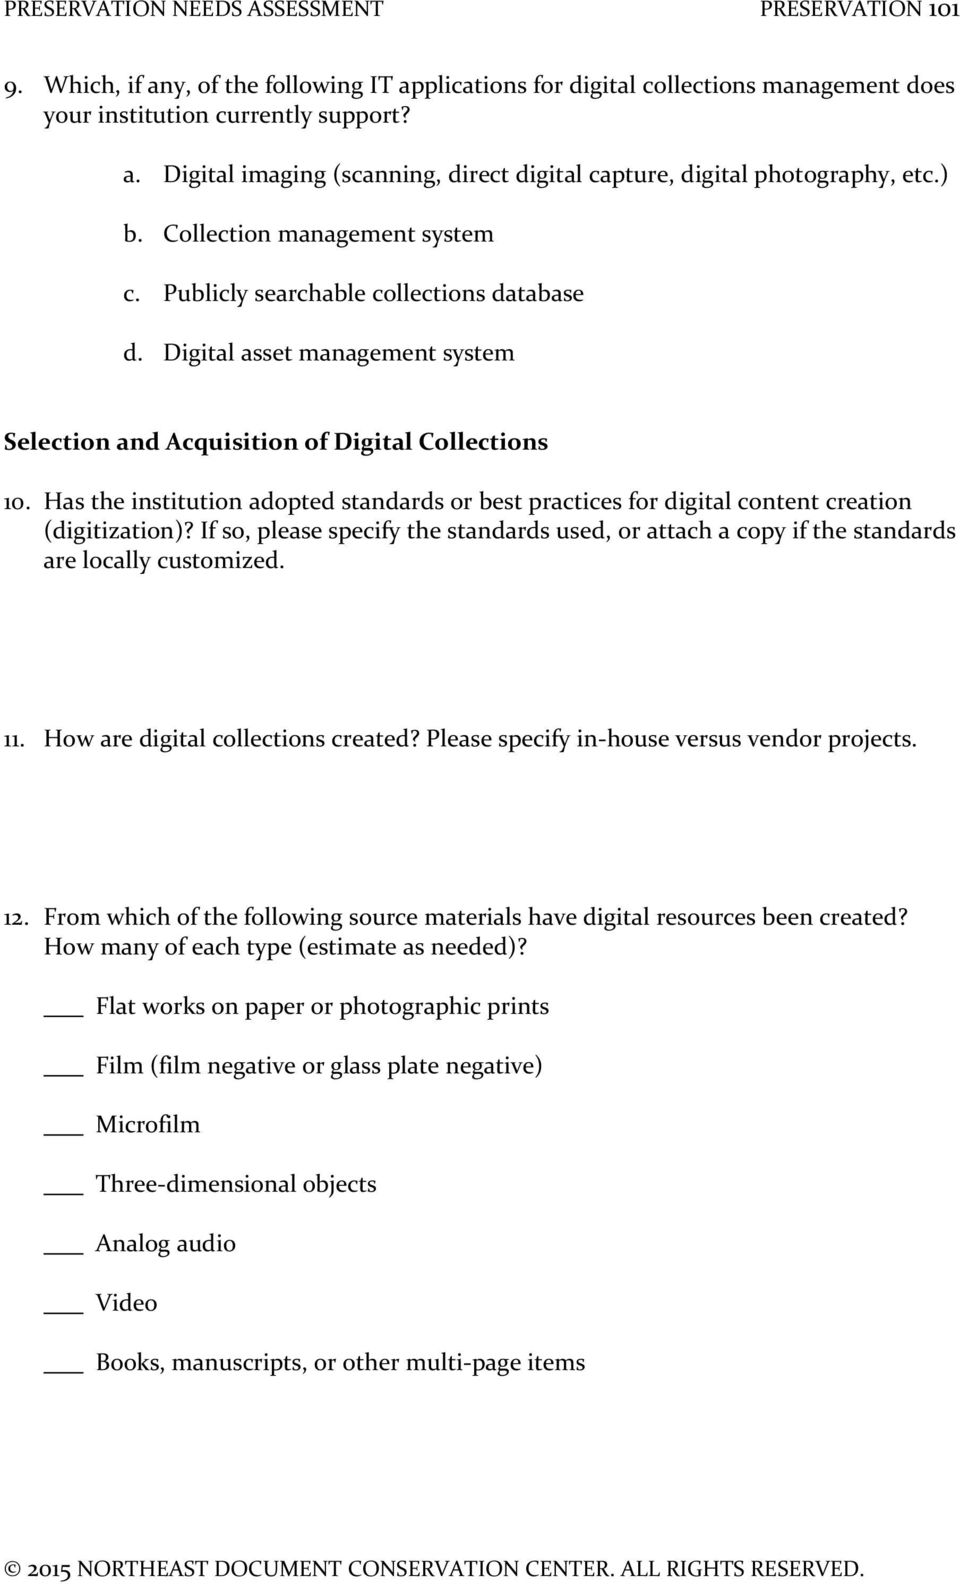 Has the institution adopted standards or best practices for digital content creation (digitization)? If so, please specify the standards used, or attach a copy if the standards are locally customized.